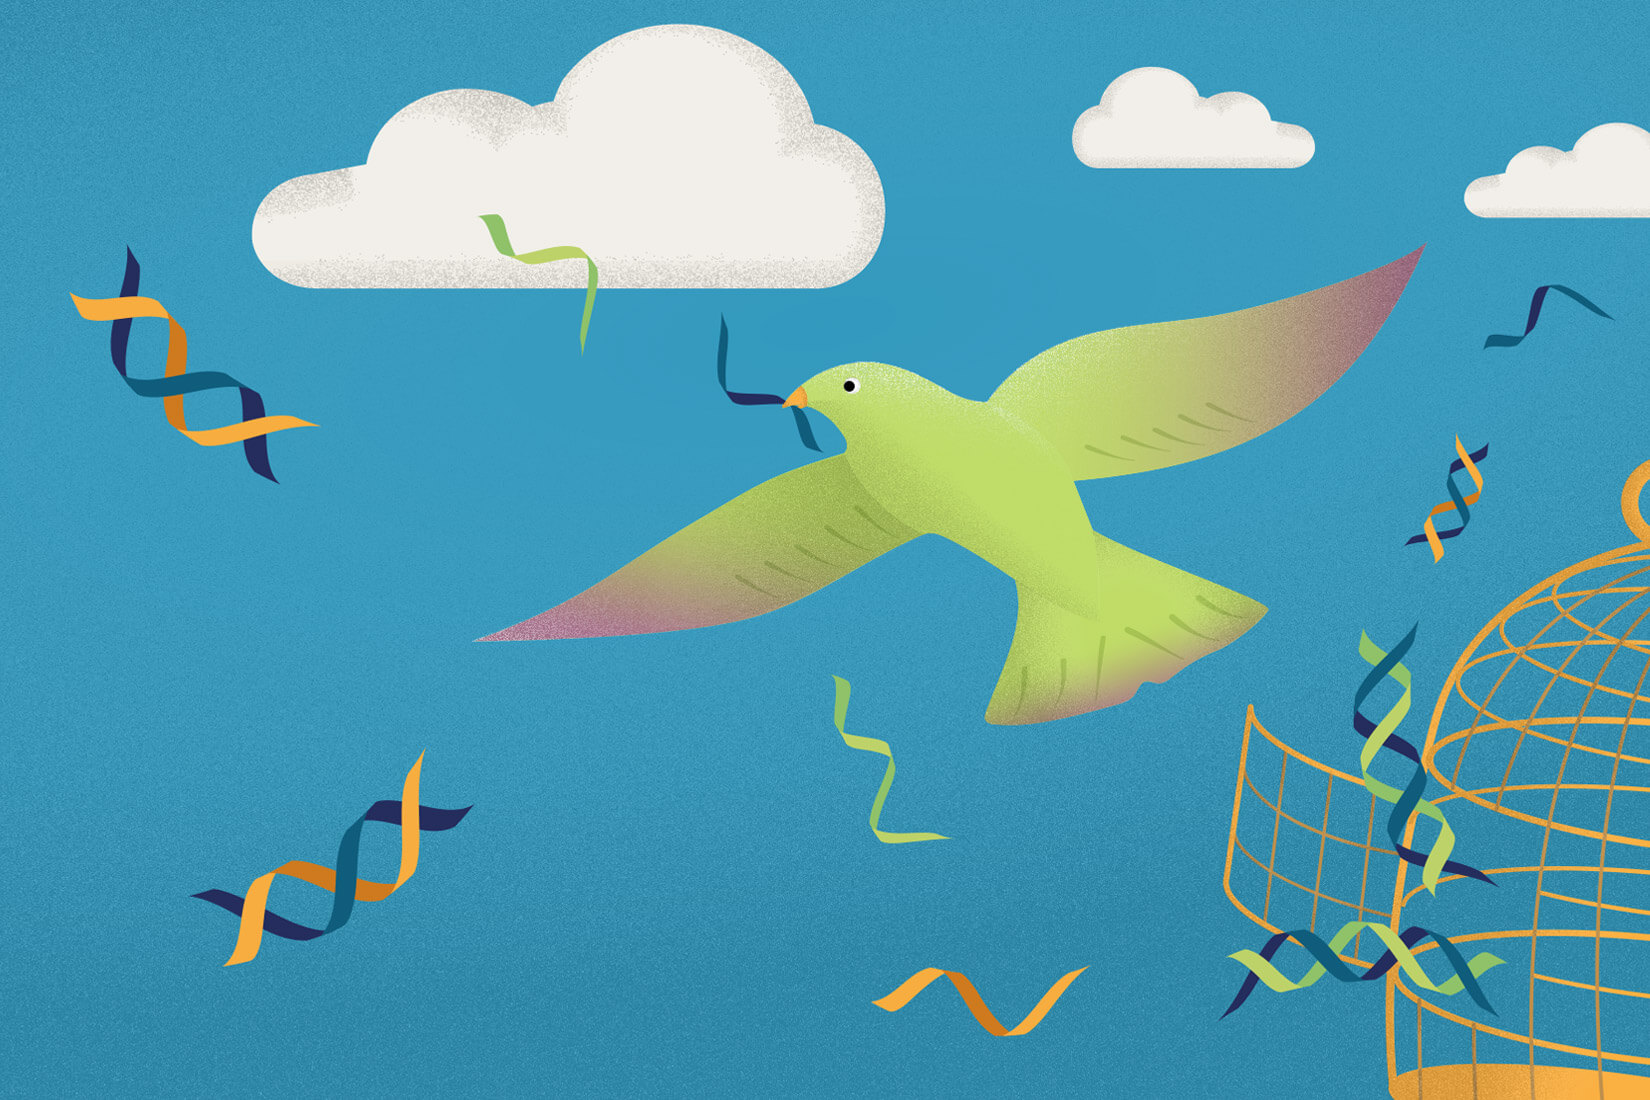 Green flying free bird illustration with DNA strand in it's beak